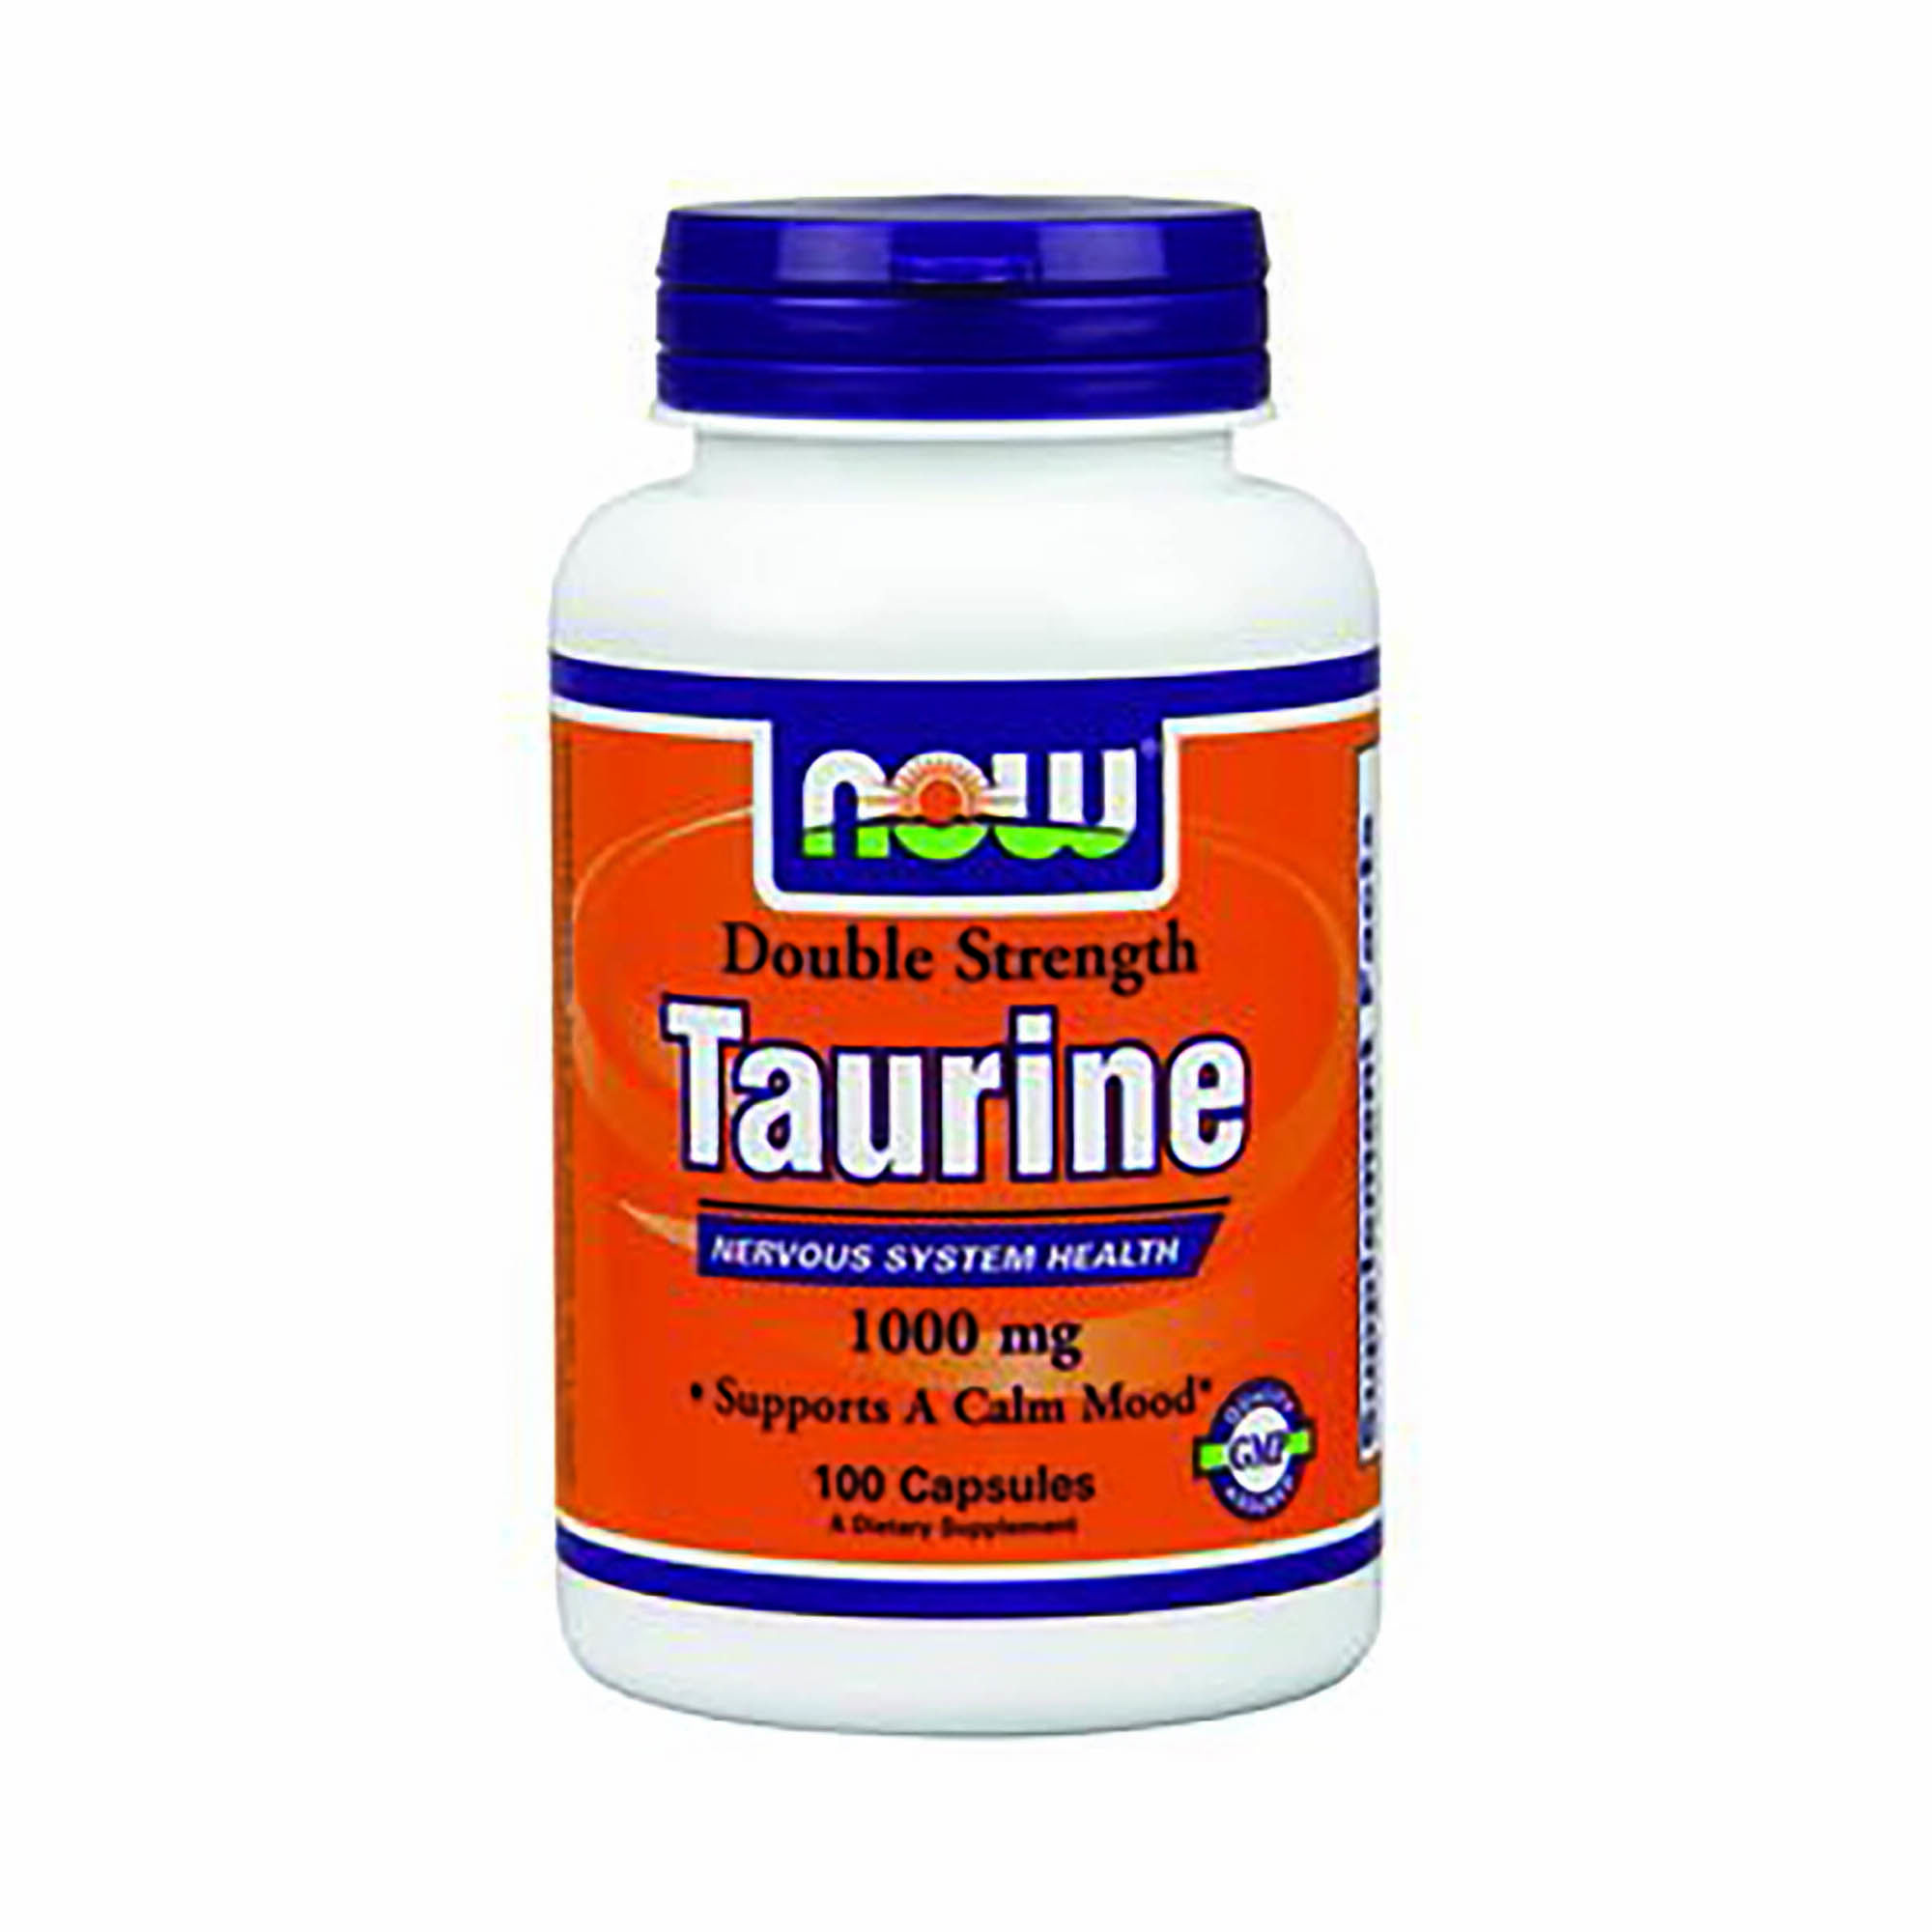 Taurine 1000 Mg - 100 Capsules - Now-� - Pre-workout Supplements